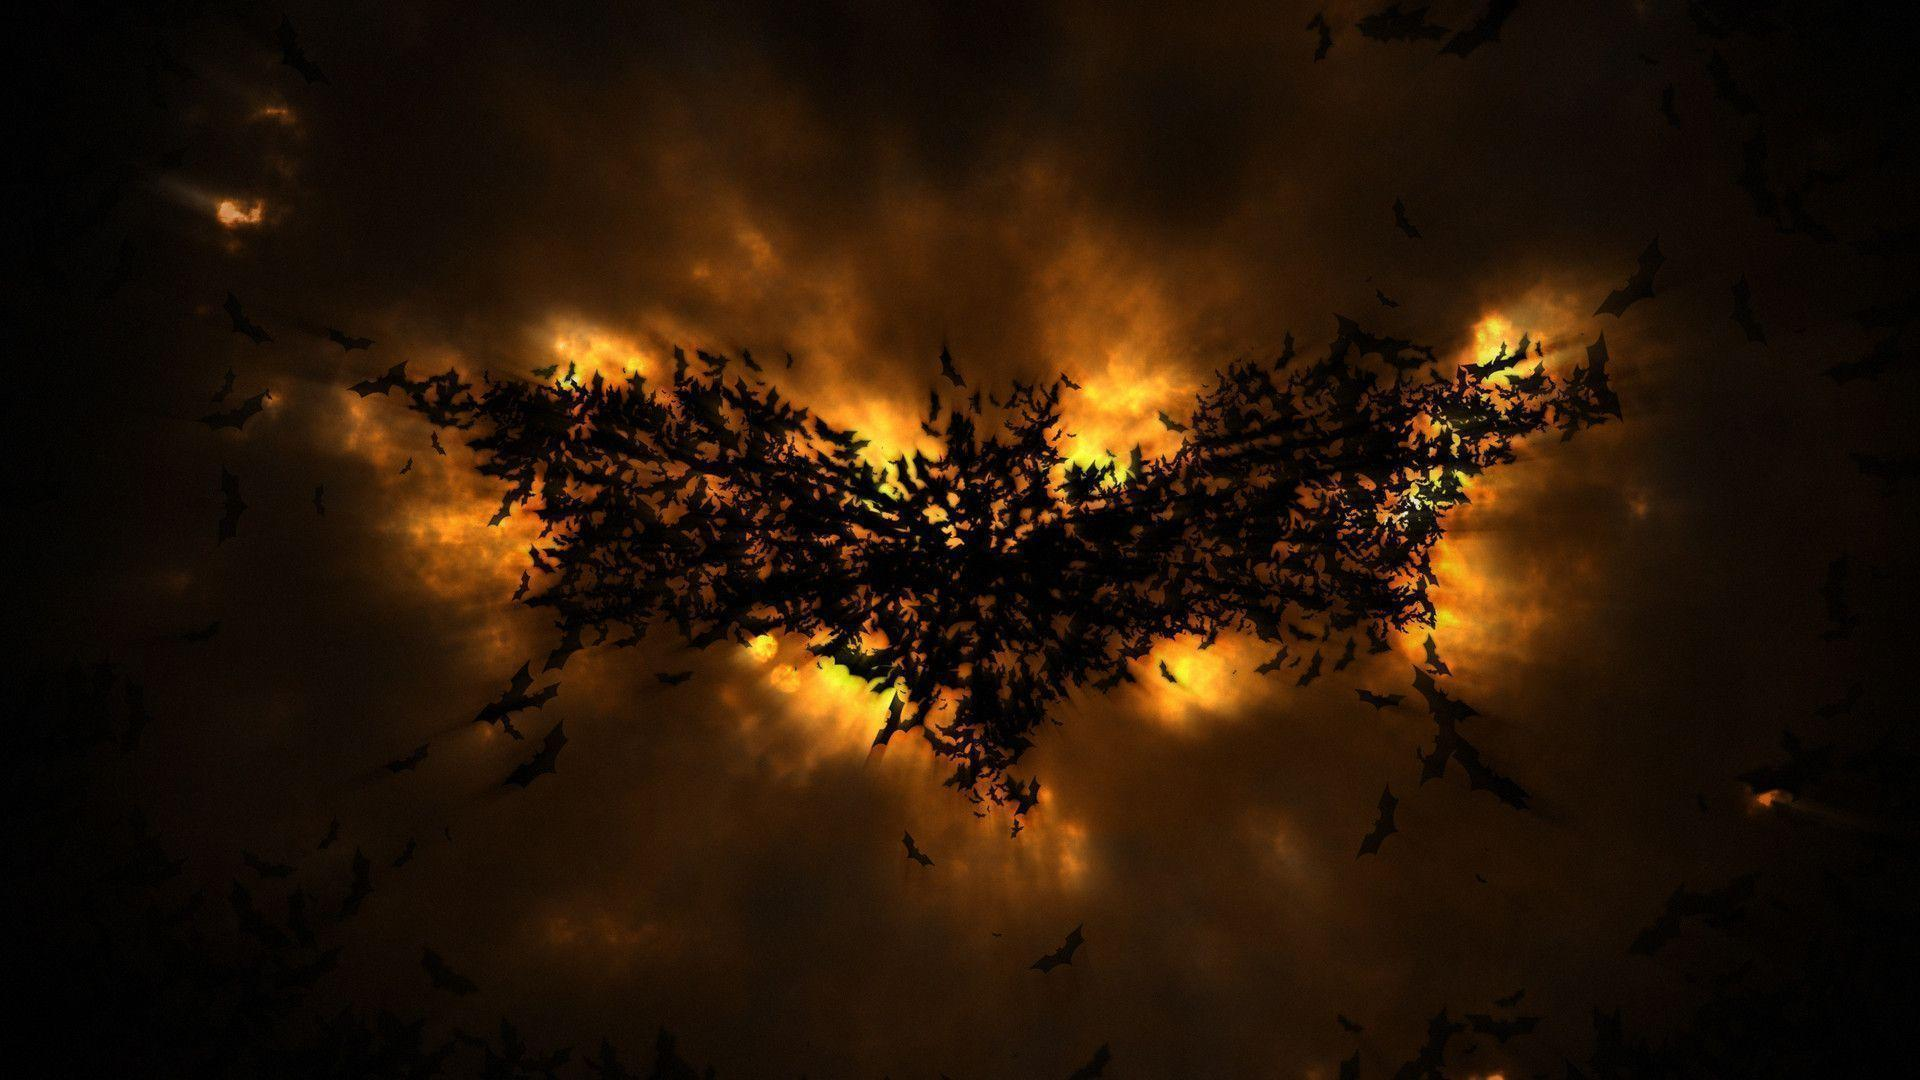 The dark knight rises wallpapers 1920x1080 wallpaper cave - Hd wallpapers of darkness ...